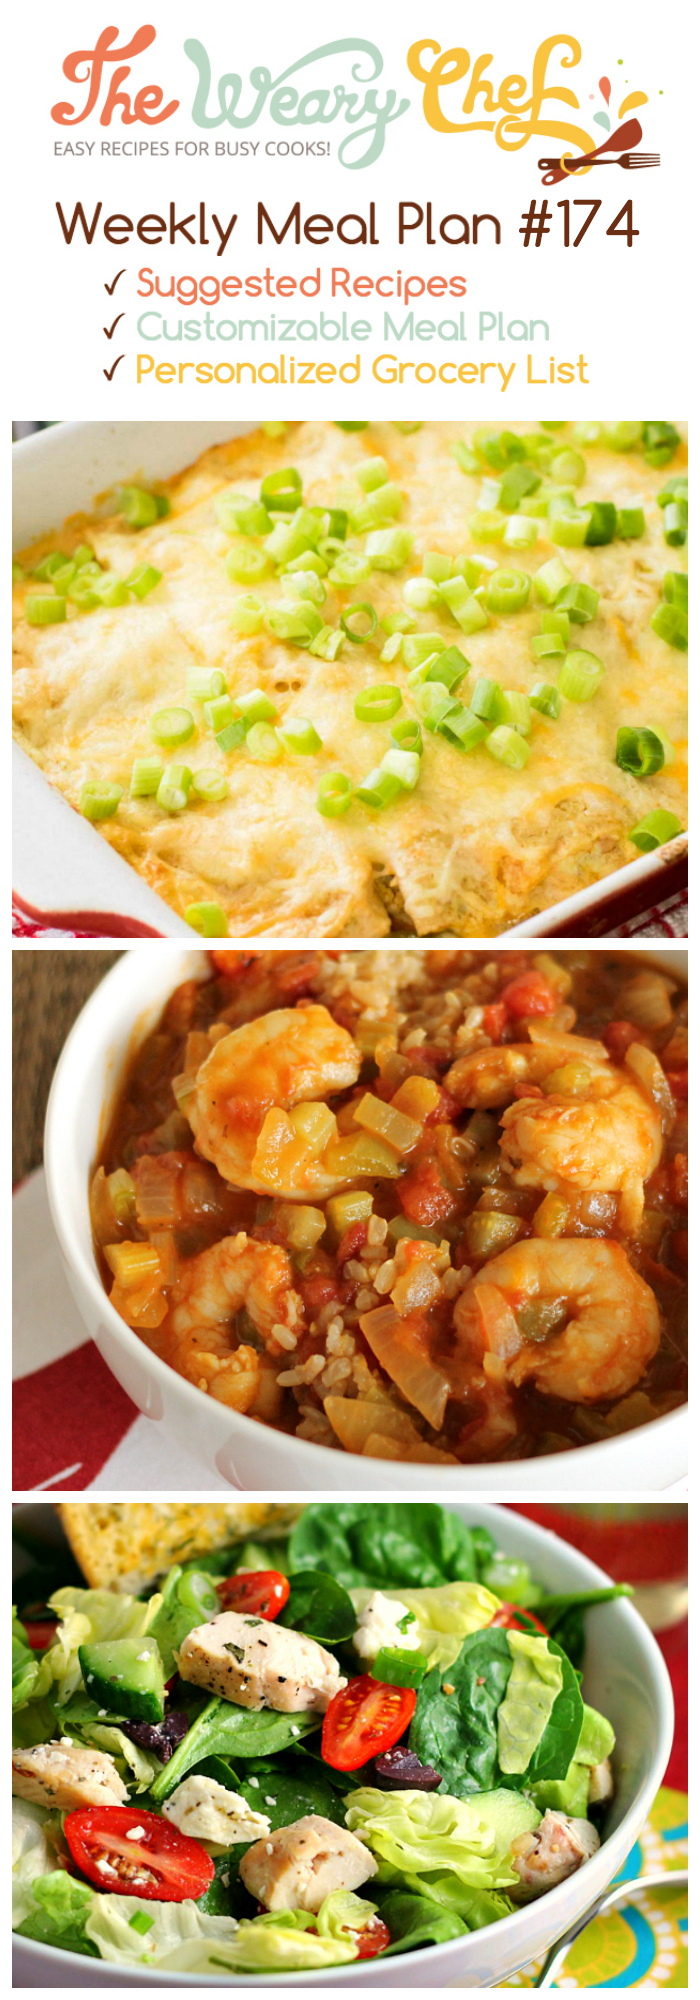 This week's menu of easy dinner recipes features Chile Relleno Casserole, Mexican Chicken Soup, Healthy Shrimp Etouffee, and lots more!